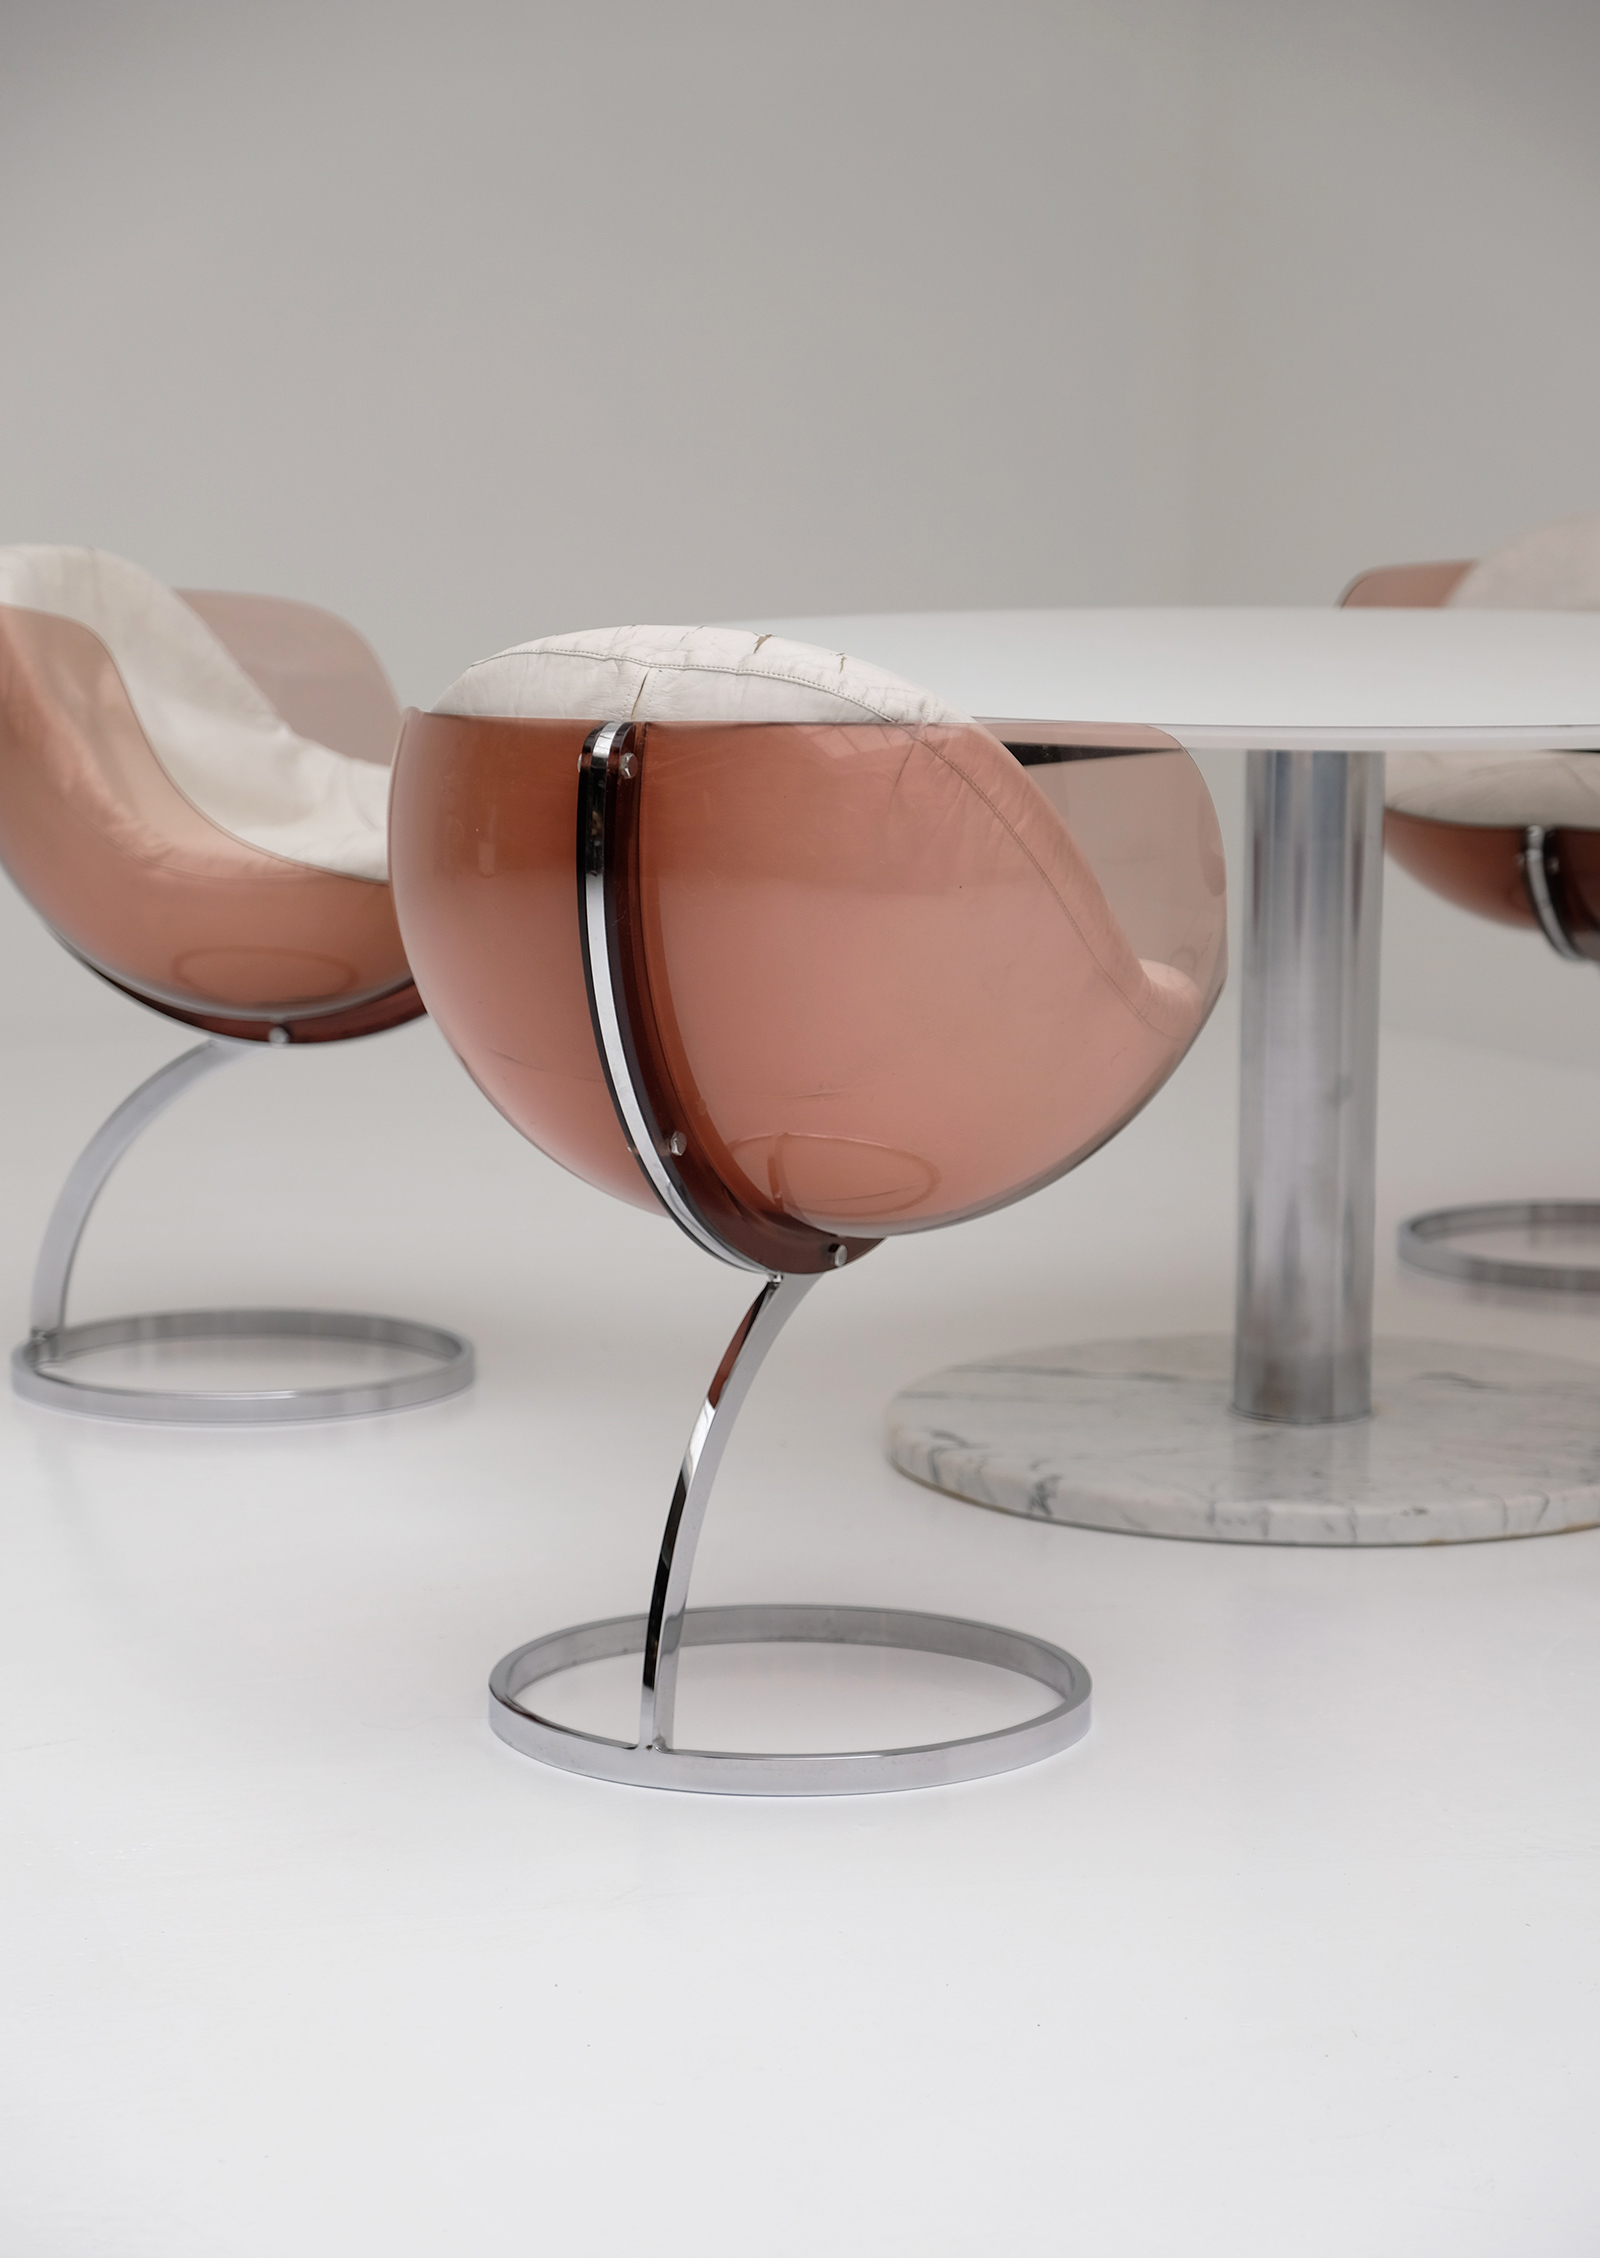 Boris Tabacoff Sphere Chairs Mobillier Modulaire Modernimage 10